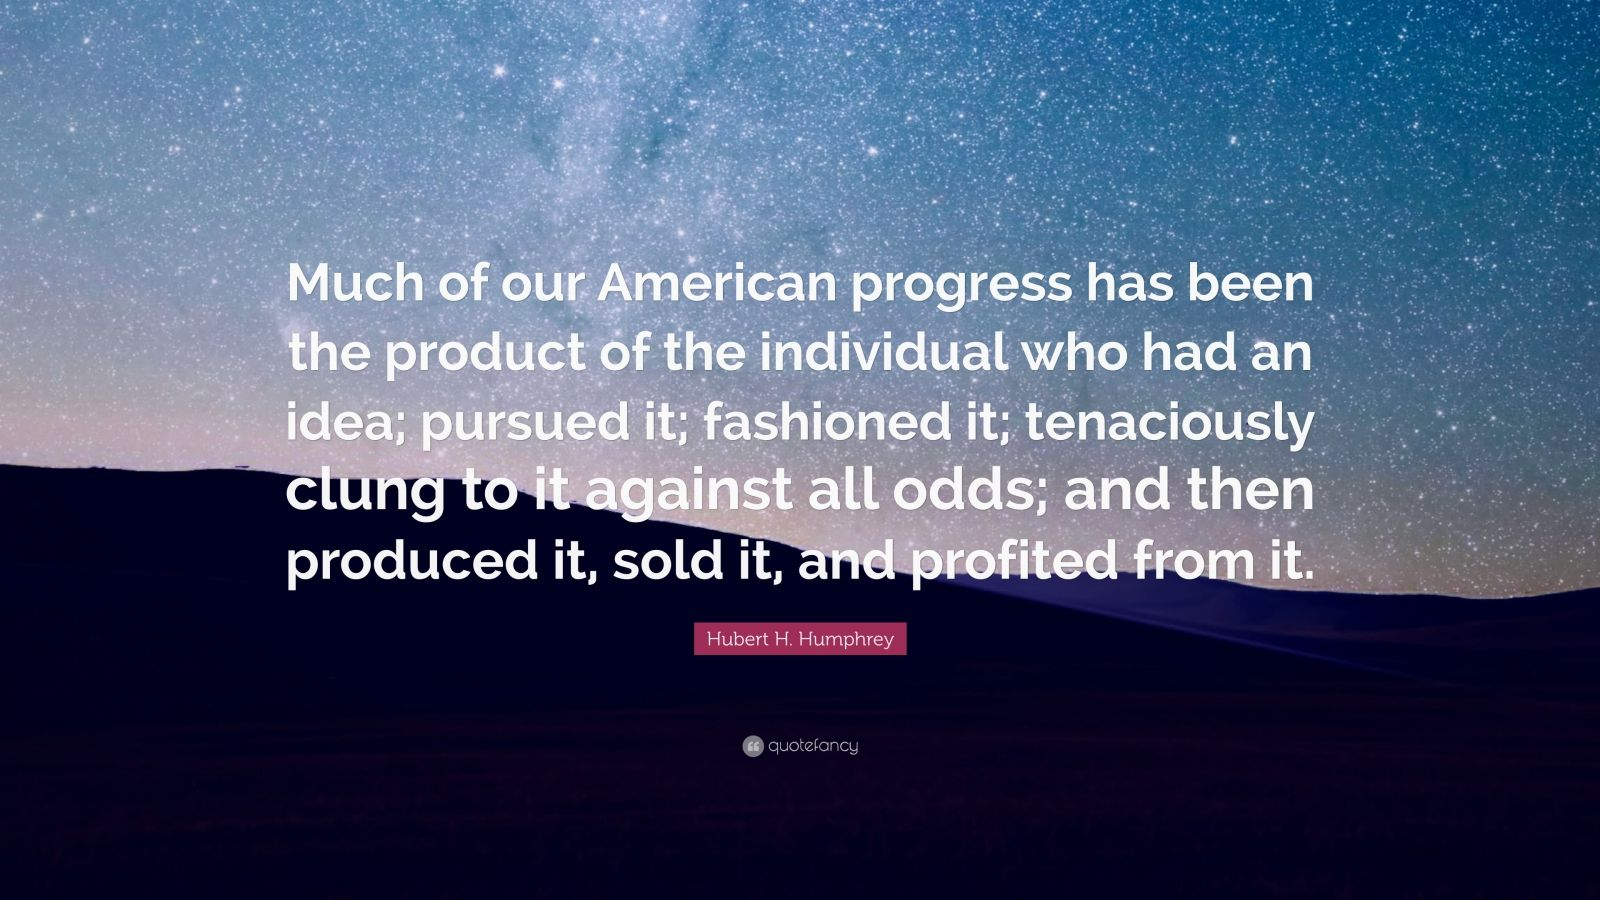 """Hubert H. Humphrey Quote: """"Much of our American progress has been the product of the individual who had an idea; pursued it; fashioned it; tenaciously clung to it against all odds; and then produced it, sold it, and profited from it."""""""